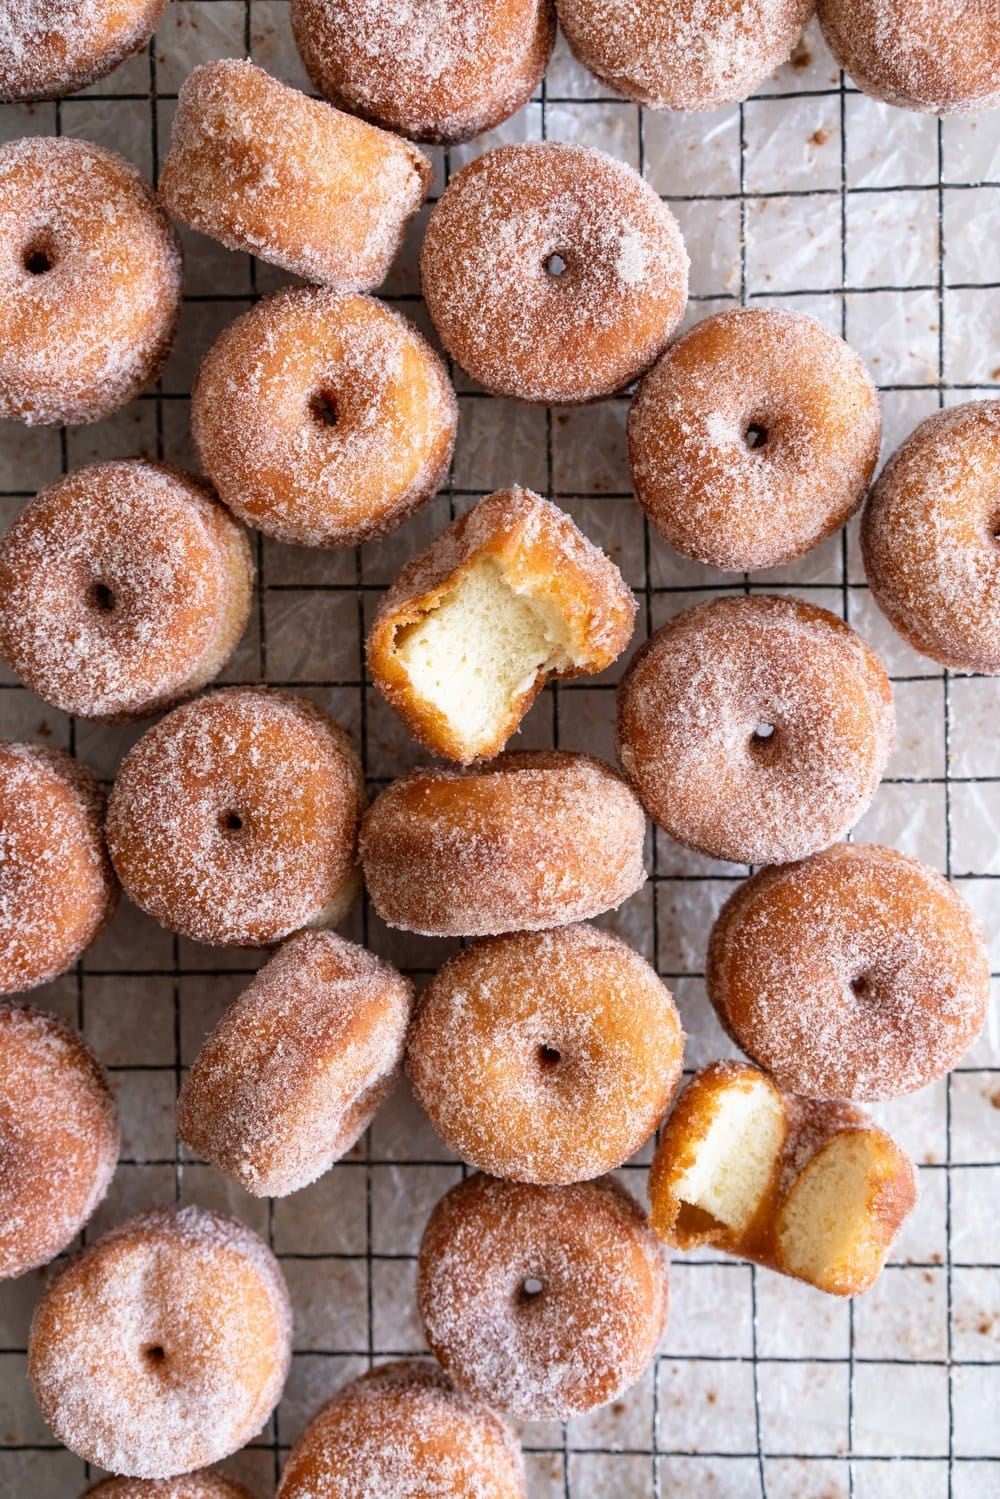 Fluffy miniature brioche doughnuts - an easy brioche dough is given an overnight rise, then rolled out and cut into tiny, perfect doughnuts, which are fried until golden brown, then rolled in cinnamon sugar. The perfect mouthful of fluffy doughnut, and sweet, spicy sugar. #briochedoughnut #cinnamonsugar #yeastdoughnut